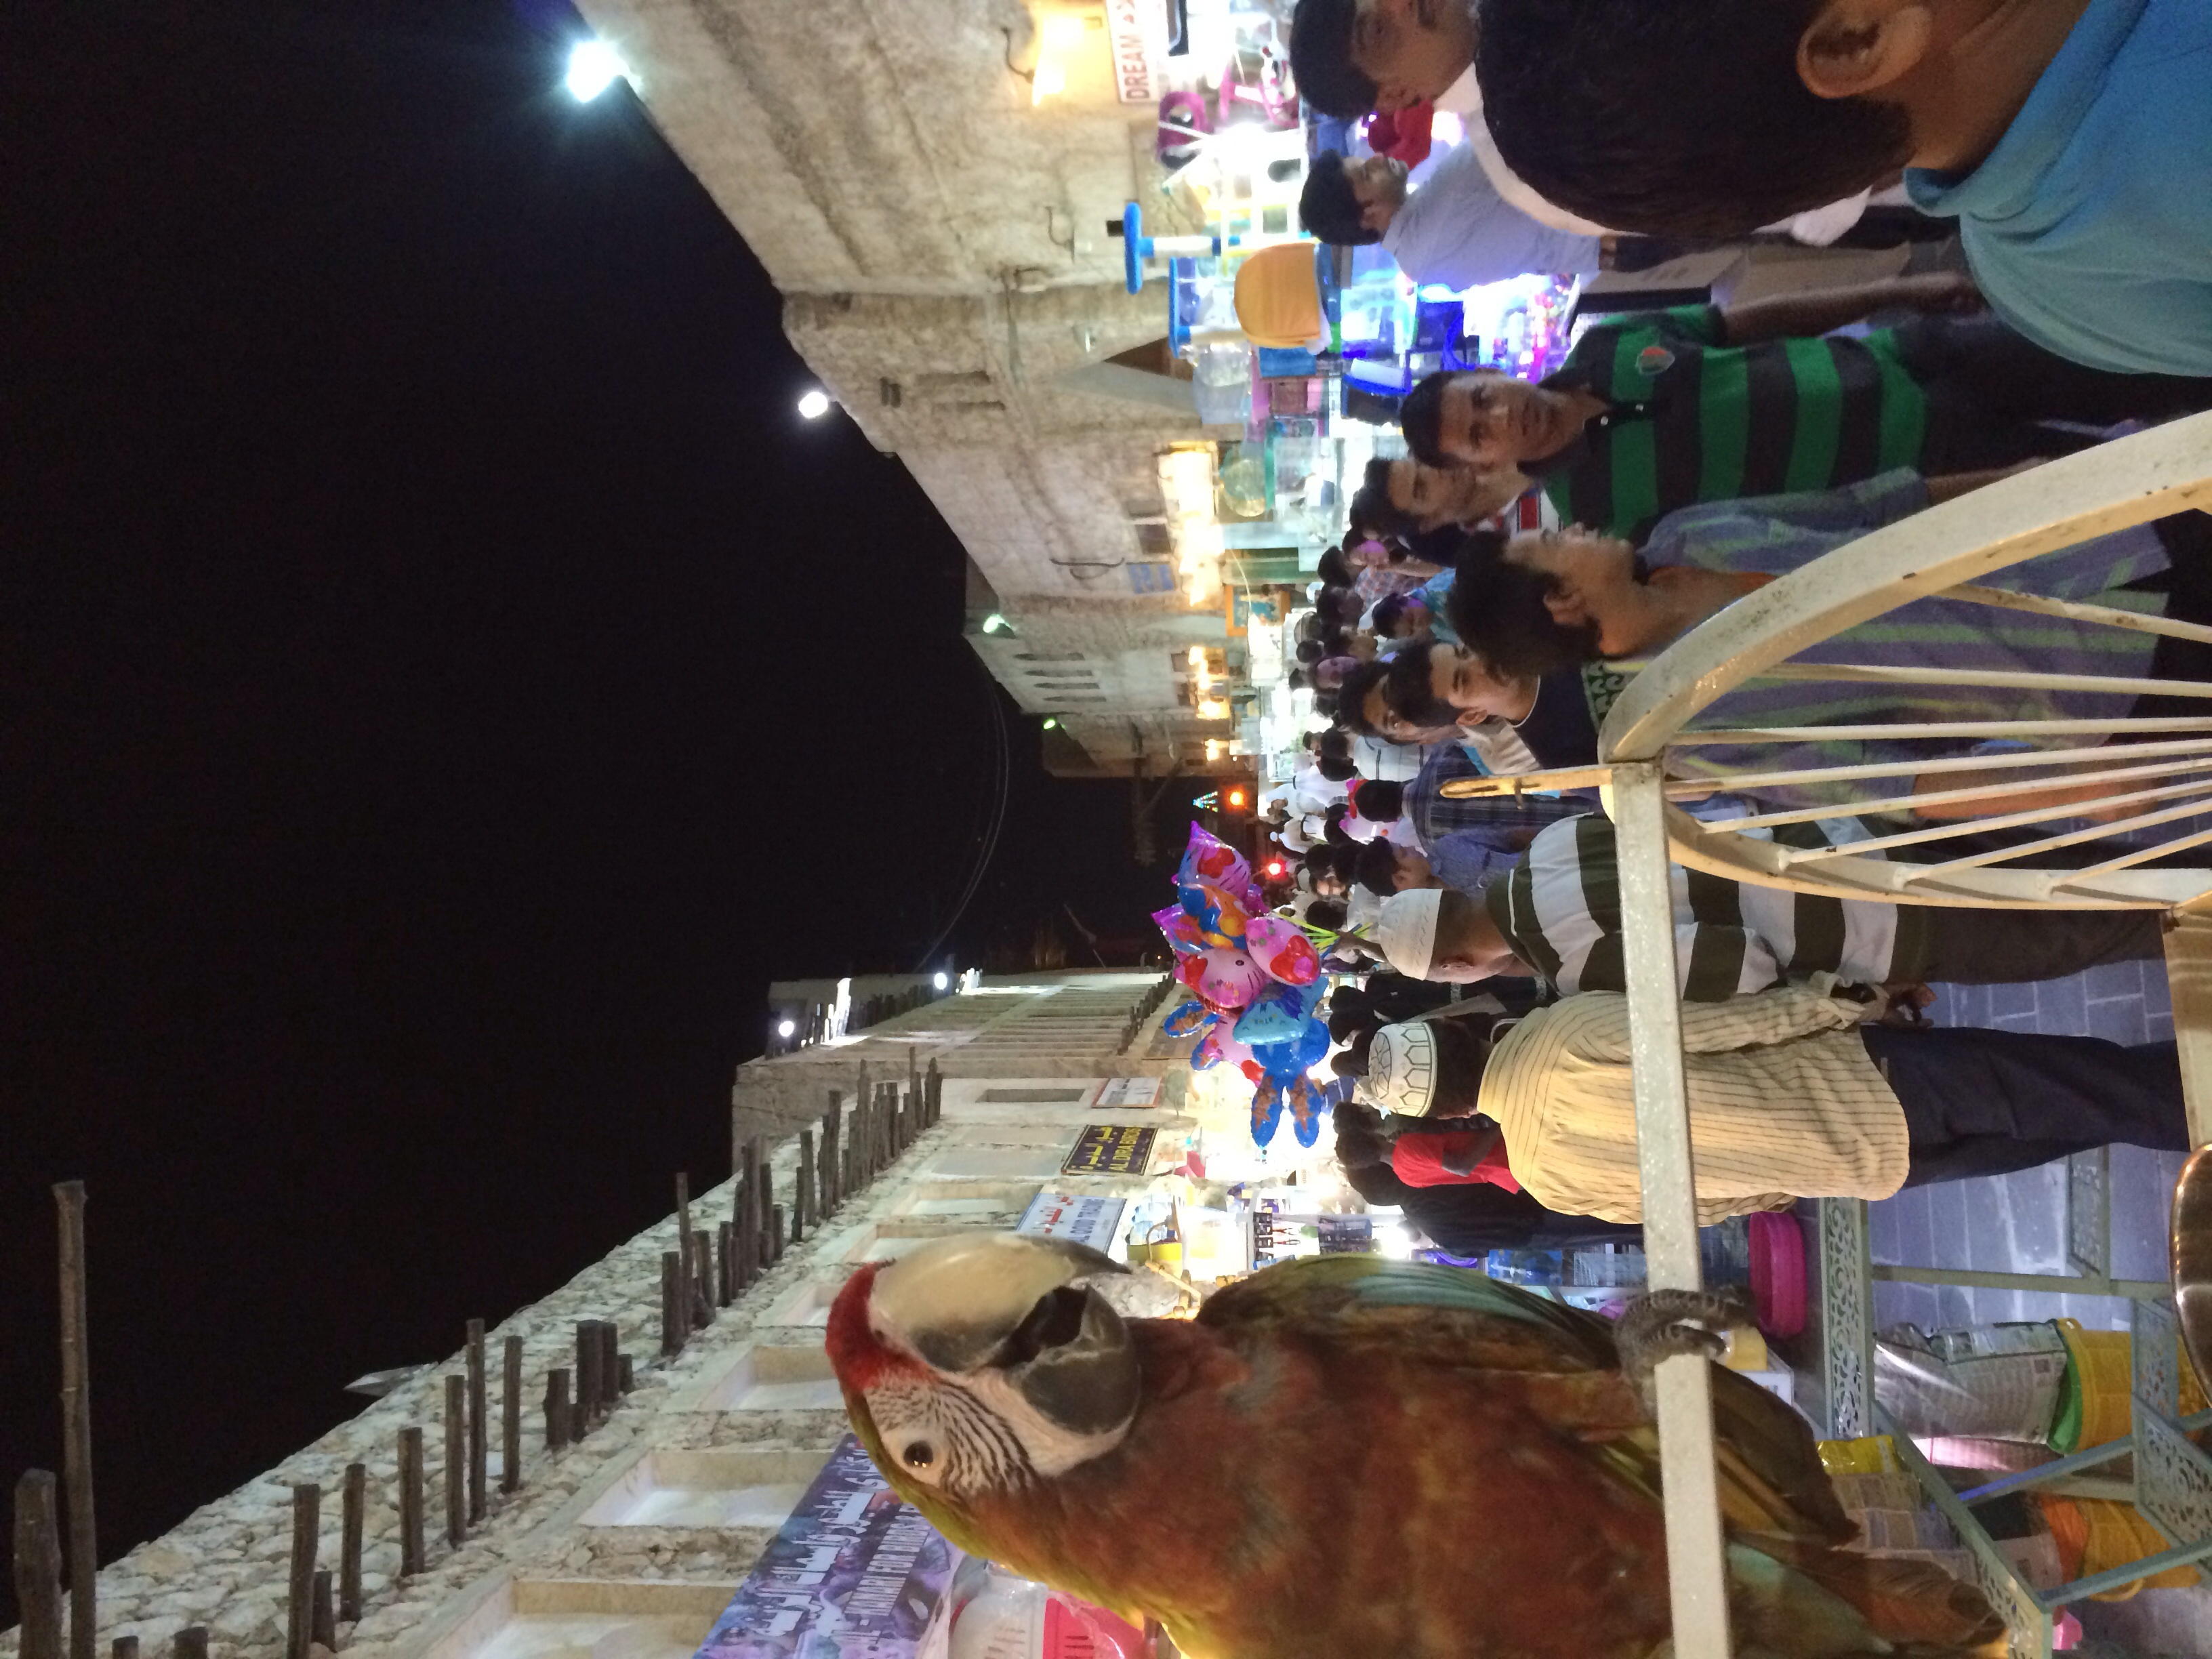 Hanging with the big birds in Souq Waqif market after sunset